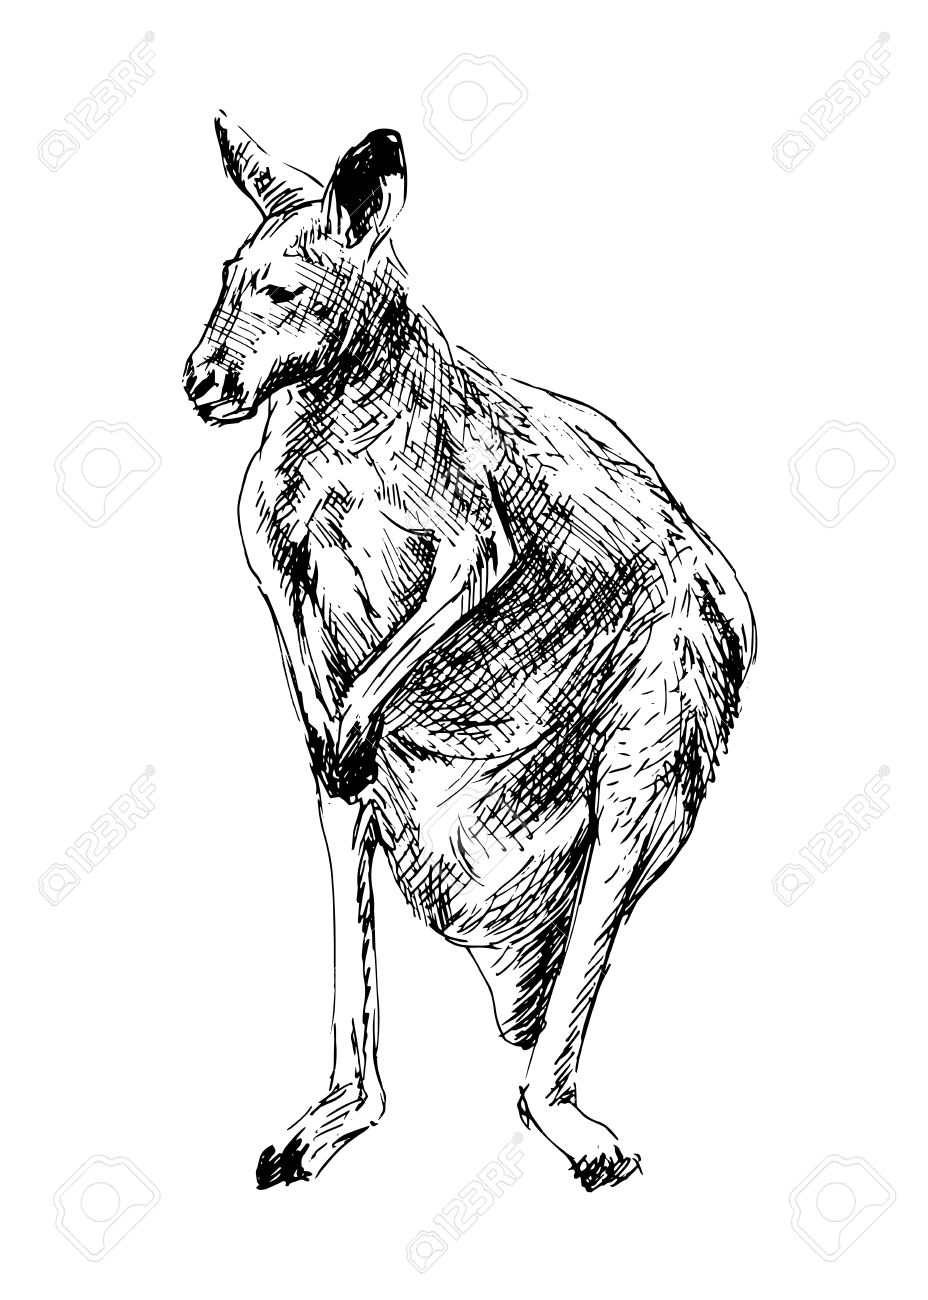 Drawing of a kangaroo  Vector illustration Stock Vector - 29299202